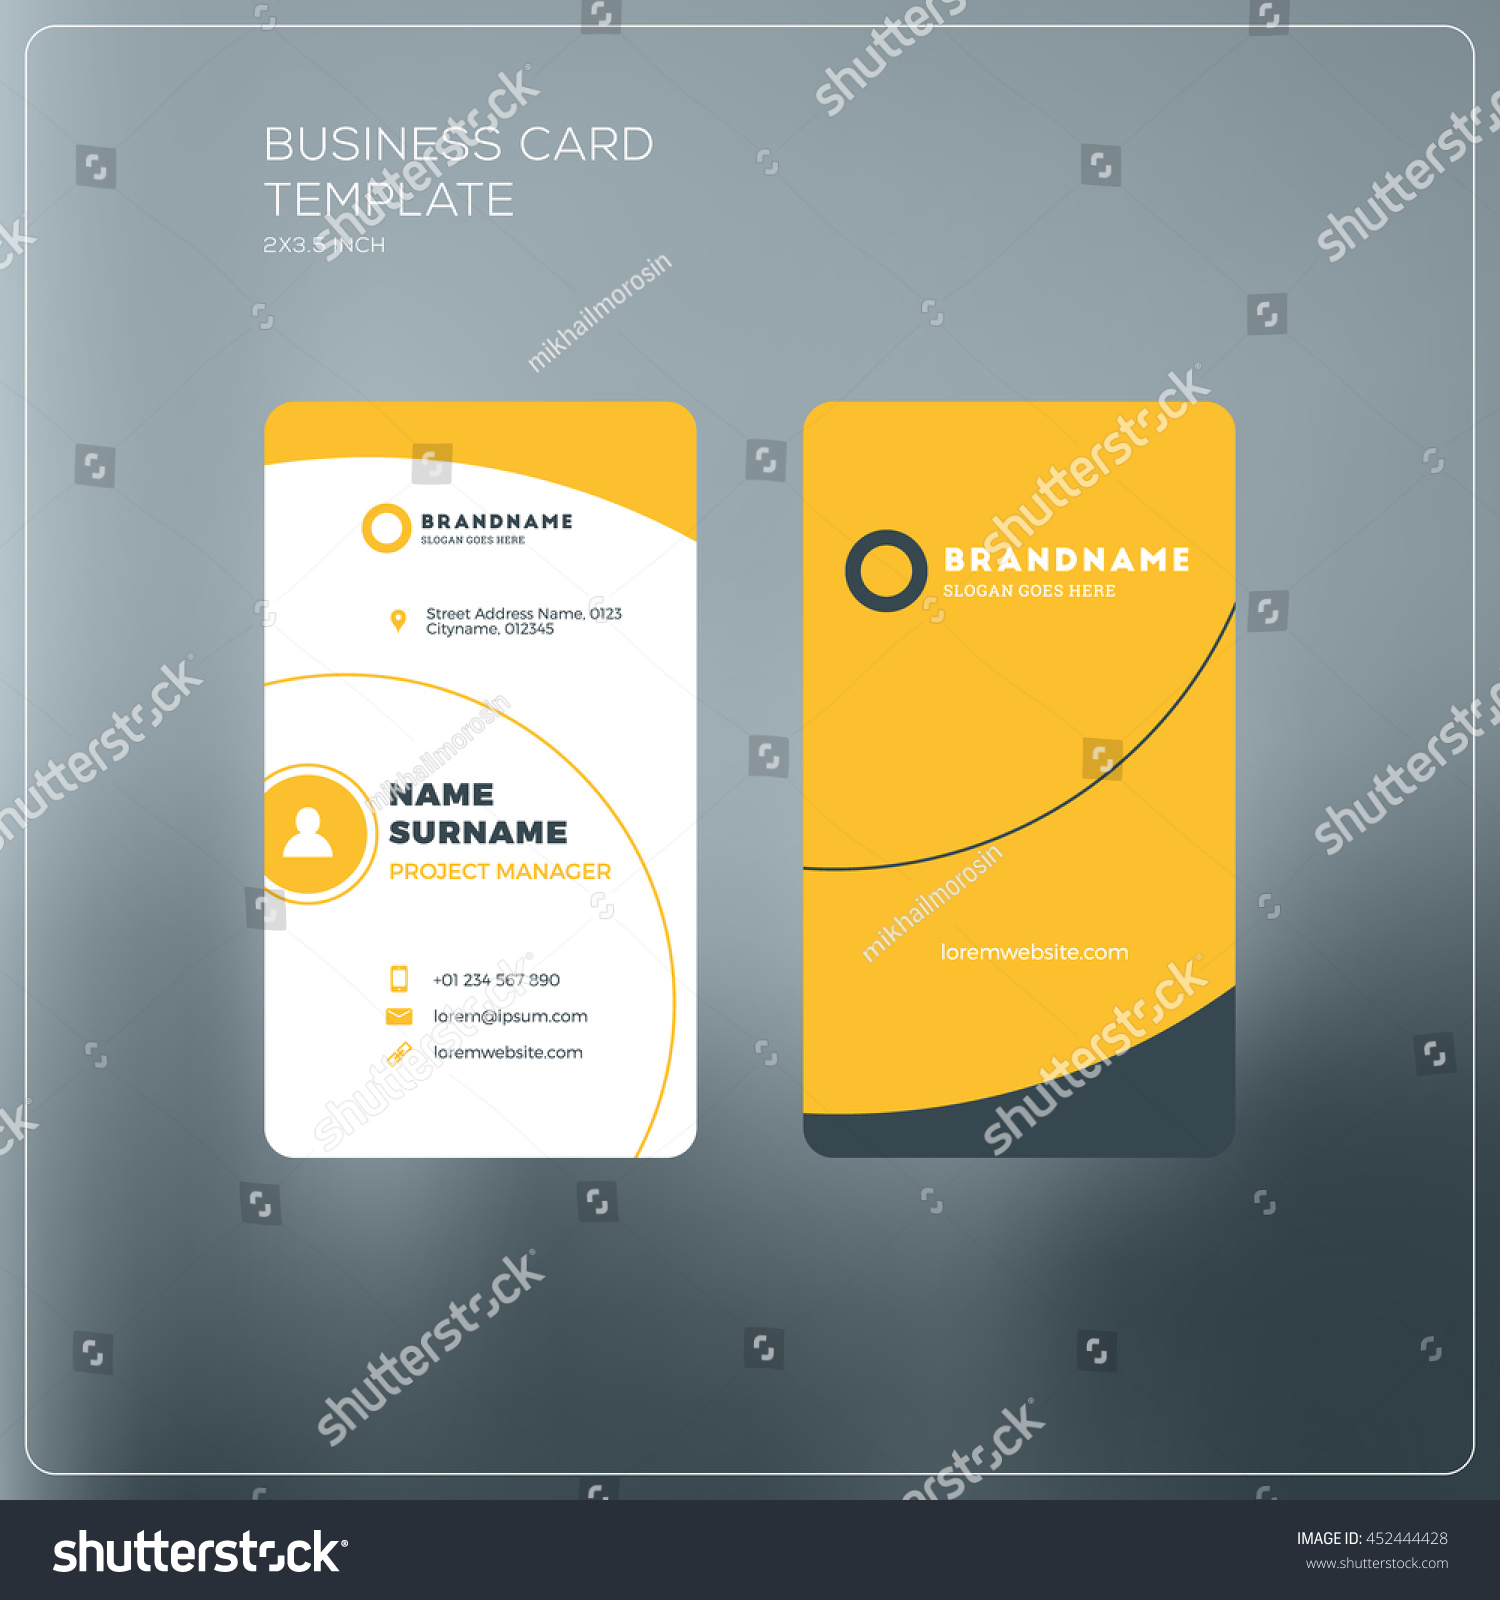 Unique Images Of Free Music Business Card Templates Business - 2 sided business card template